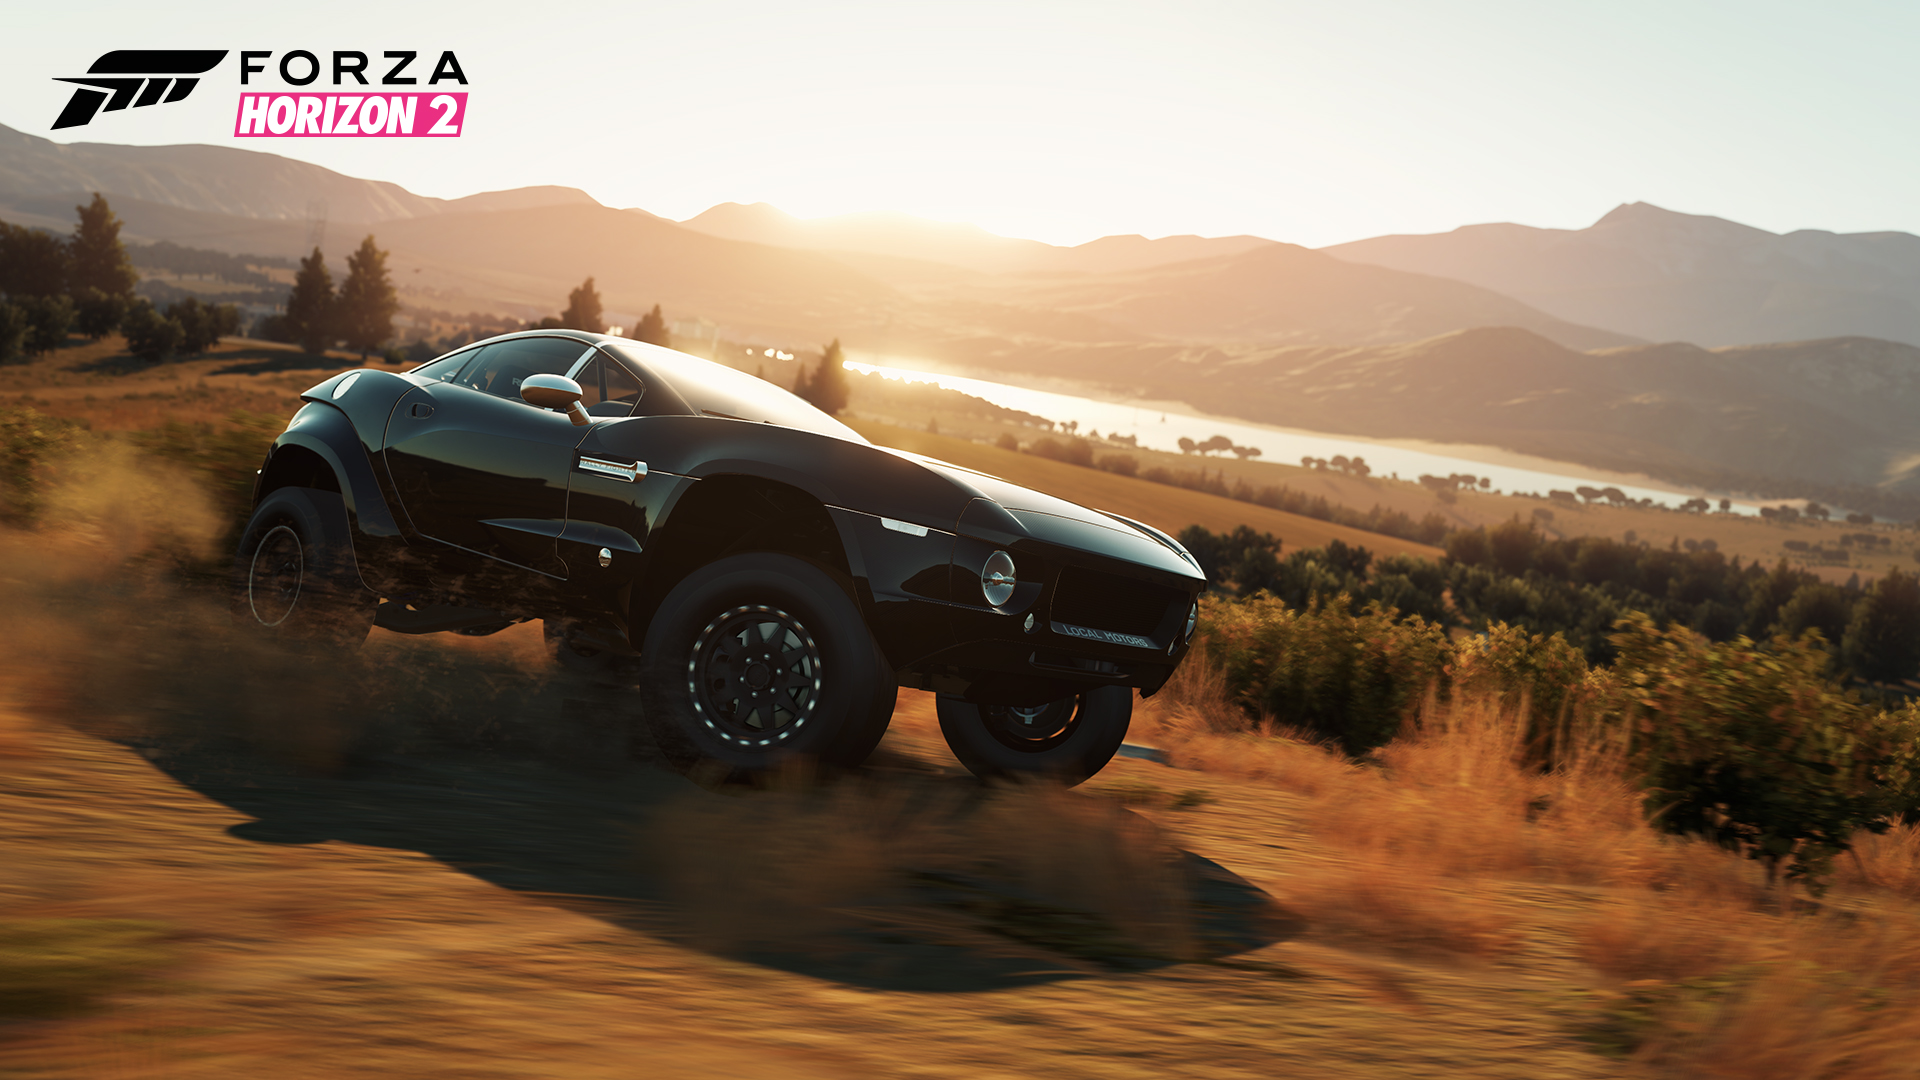 forza horizon 2 xbox one review one of the all time great racers usgamer. Black Bedroom Furniture Sets. Home Design Ideas